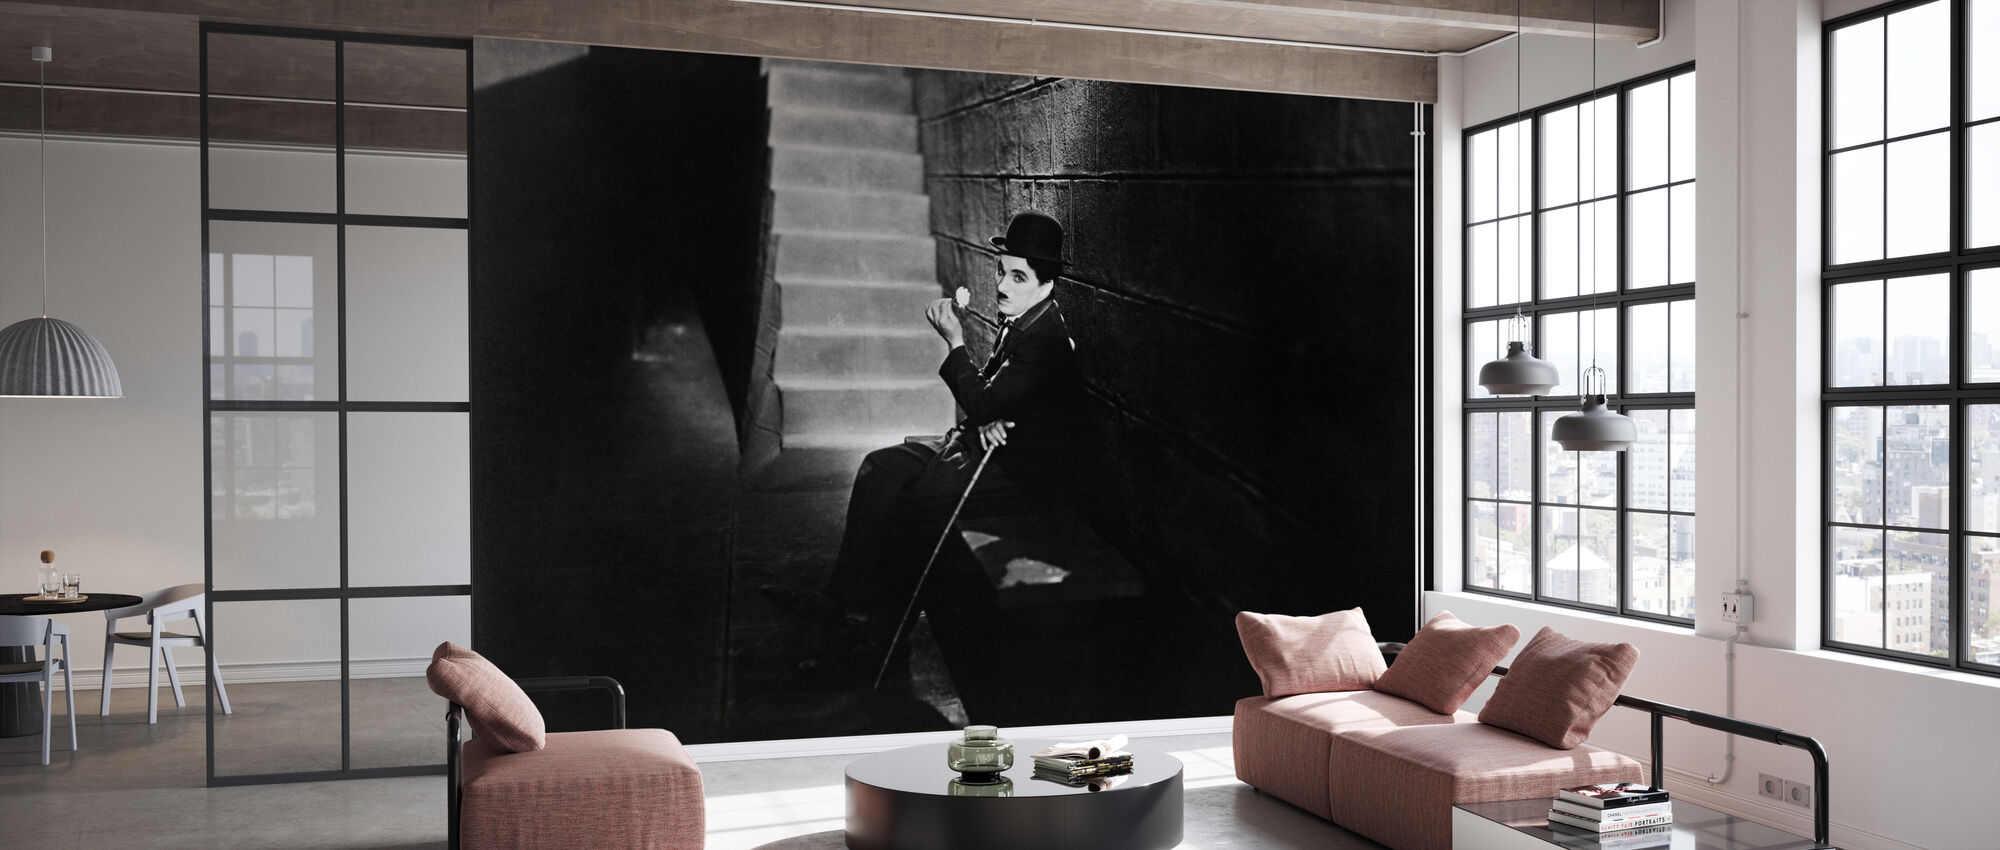 City Lights - Charlie Chaplin - Wallpaper - Office